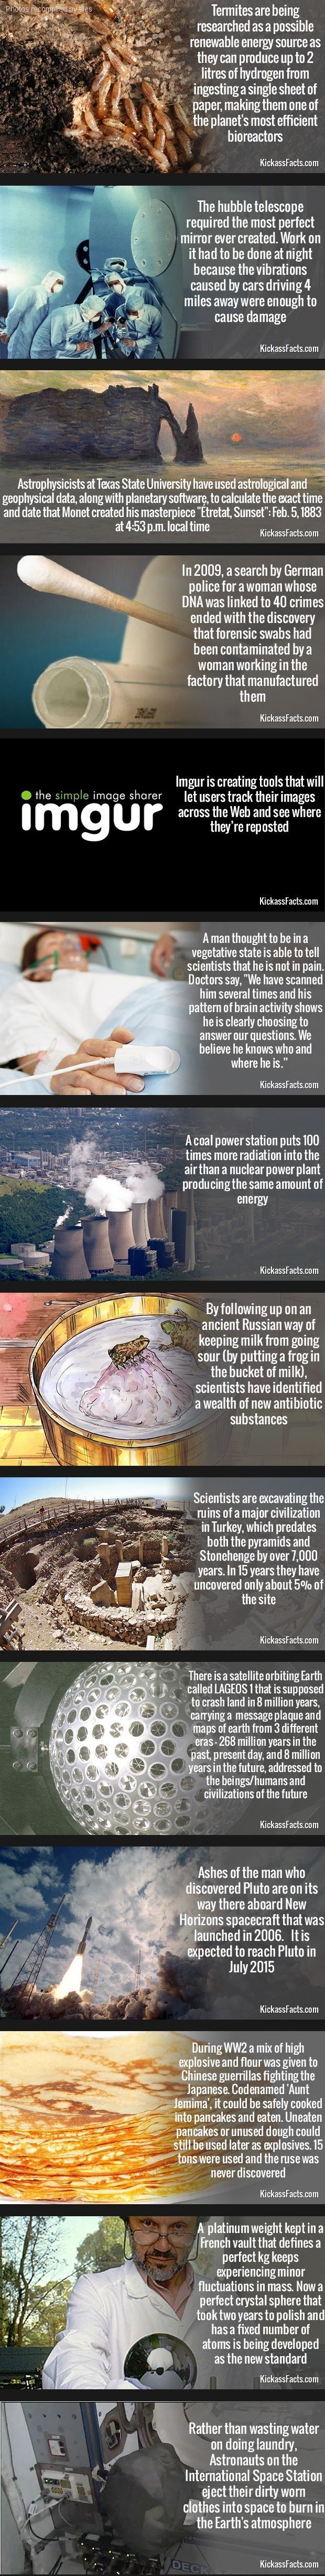 Cool Science Tech facts - that last one tho. I want to burn my dirty laundry in Earth's atmosphere.